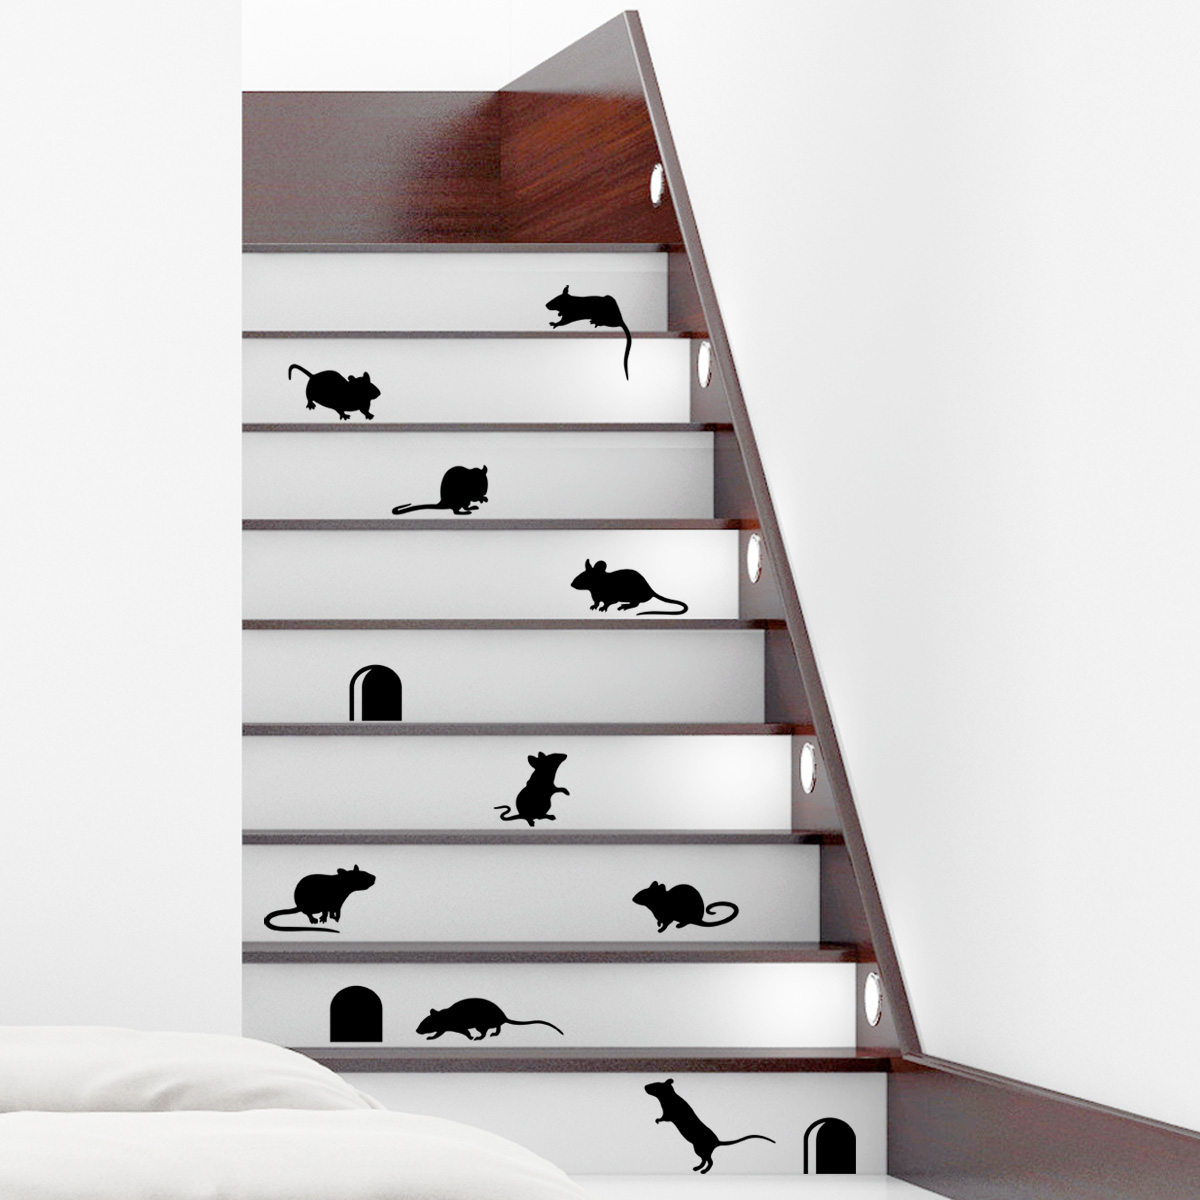 stickers muraux animaux sticker escaliers dr les avec souris ambiance. Black Bedroom Furniture Sets. Home Design Ideas